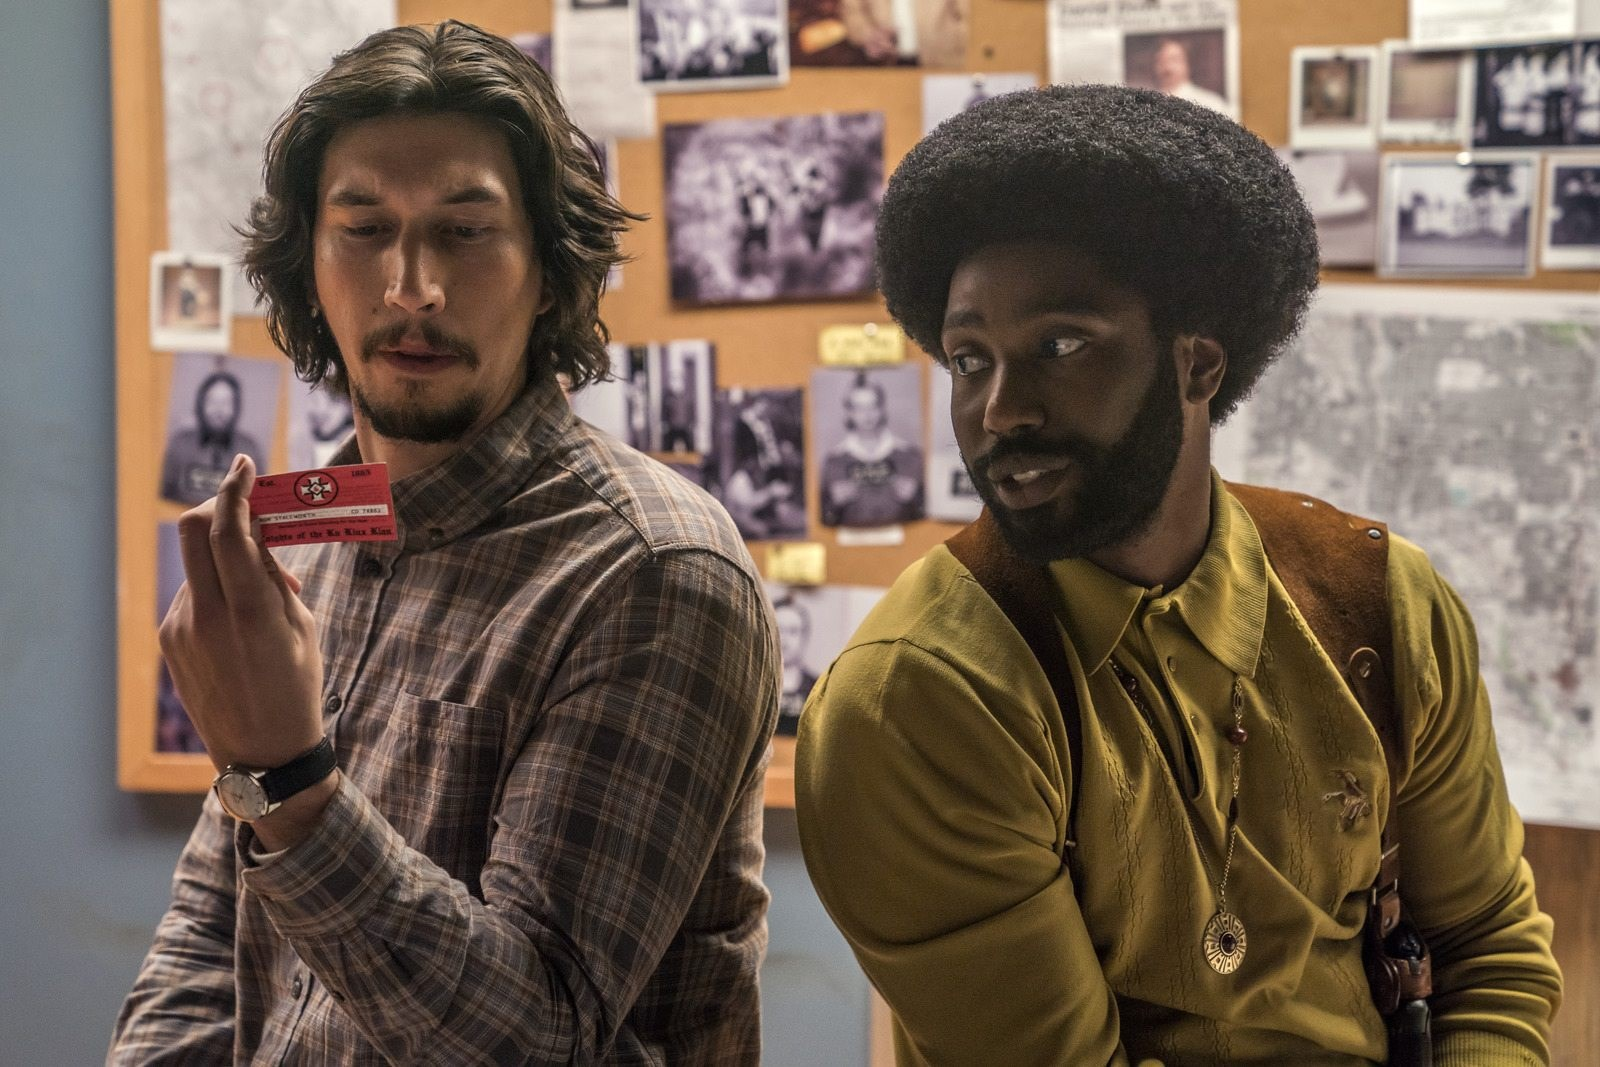 BlacKkKlansman - What You Need To Know